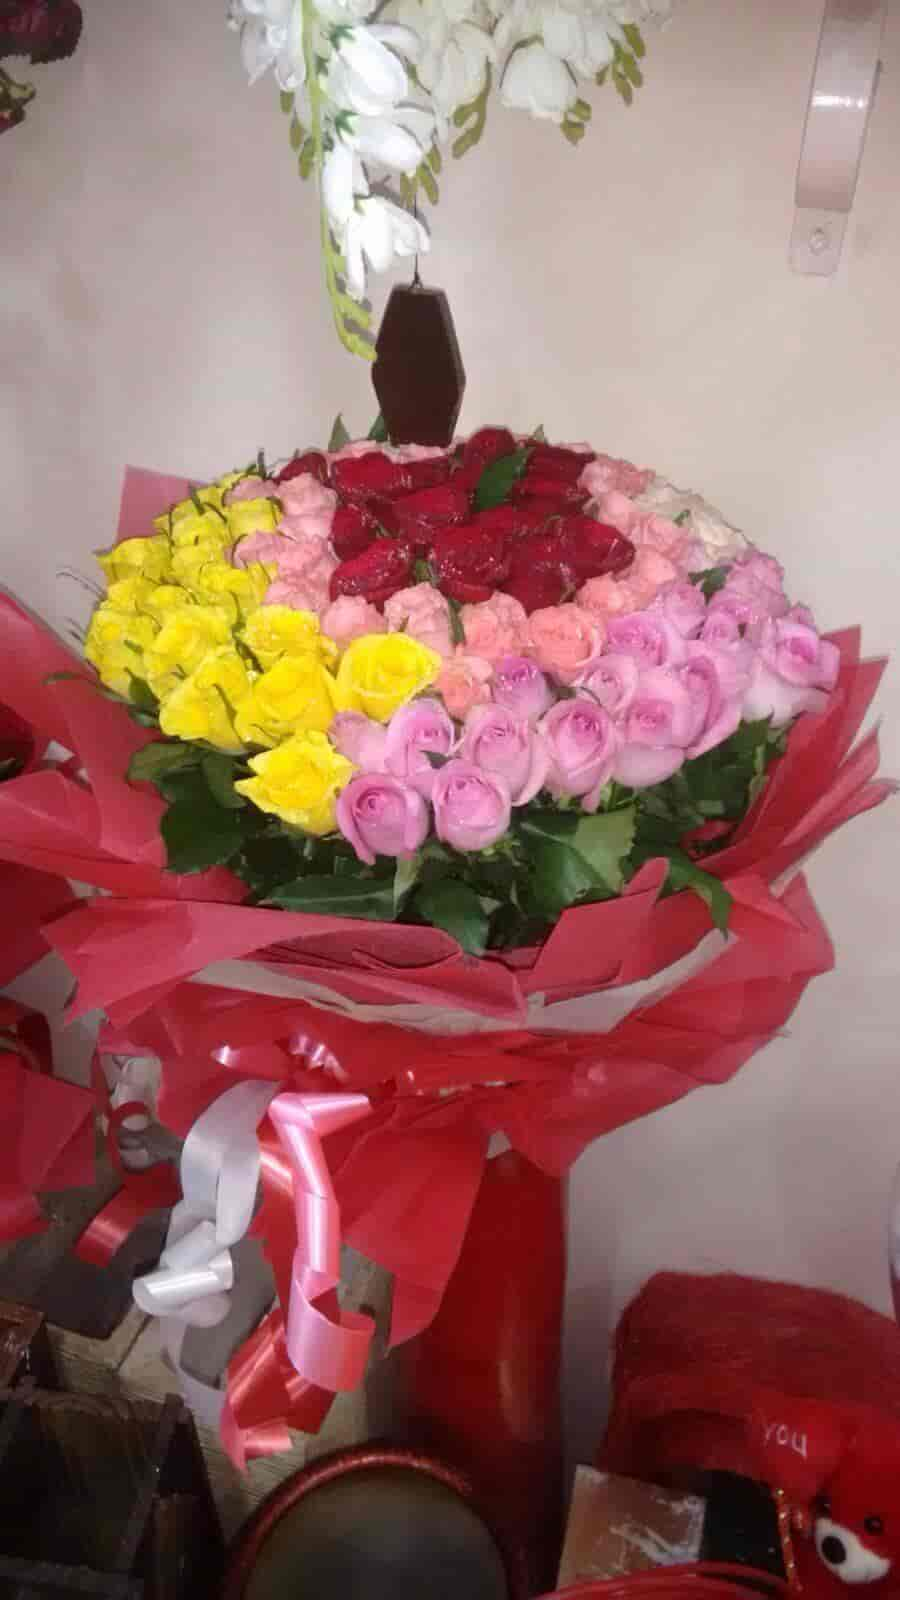 Datta Flower Shopee Photos, Rajapeth, Amravati- Pictures & Images ...